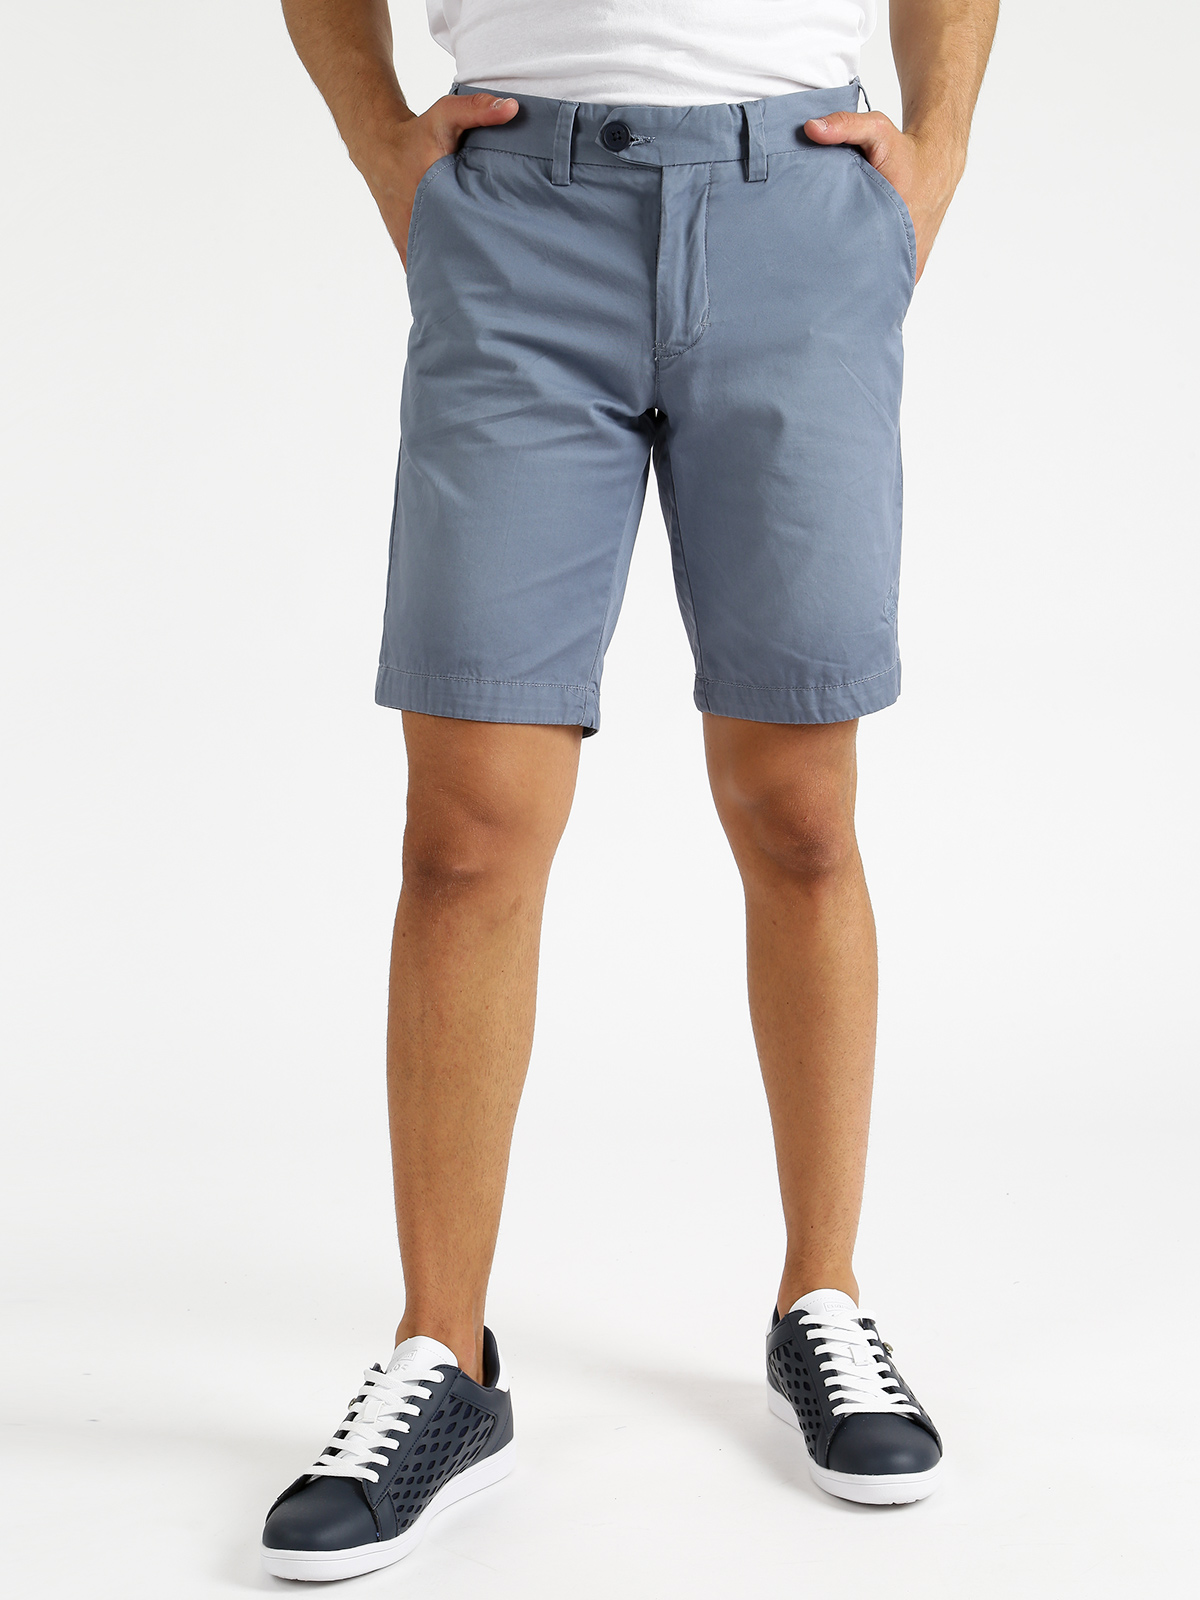 Bermuda Cotton With Pockets Side